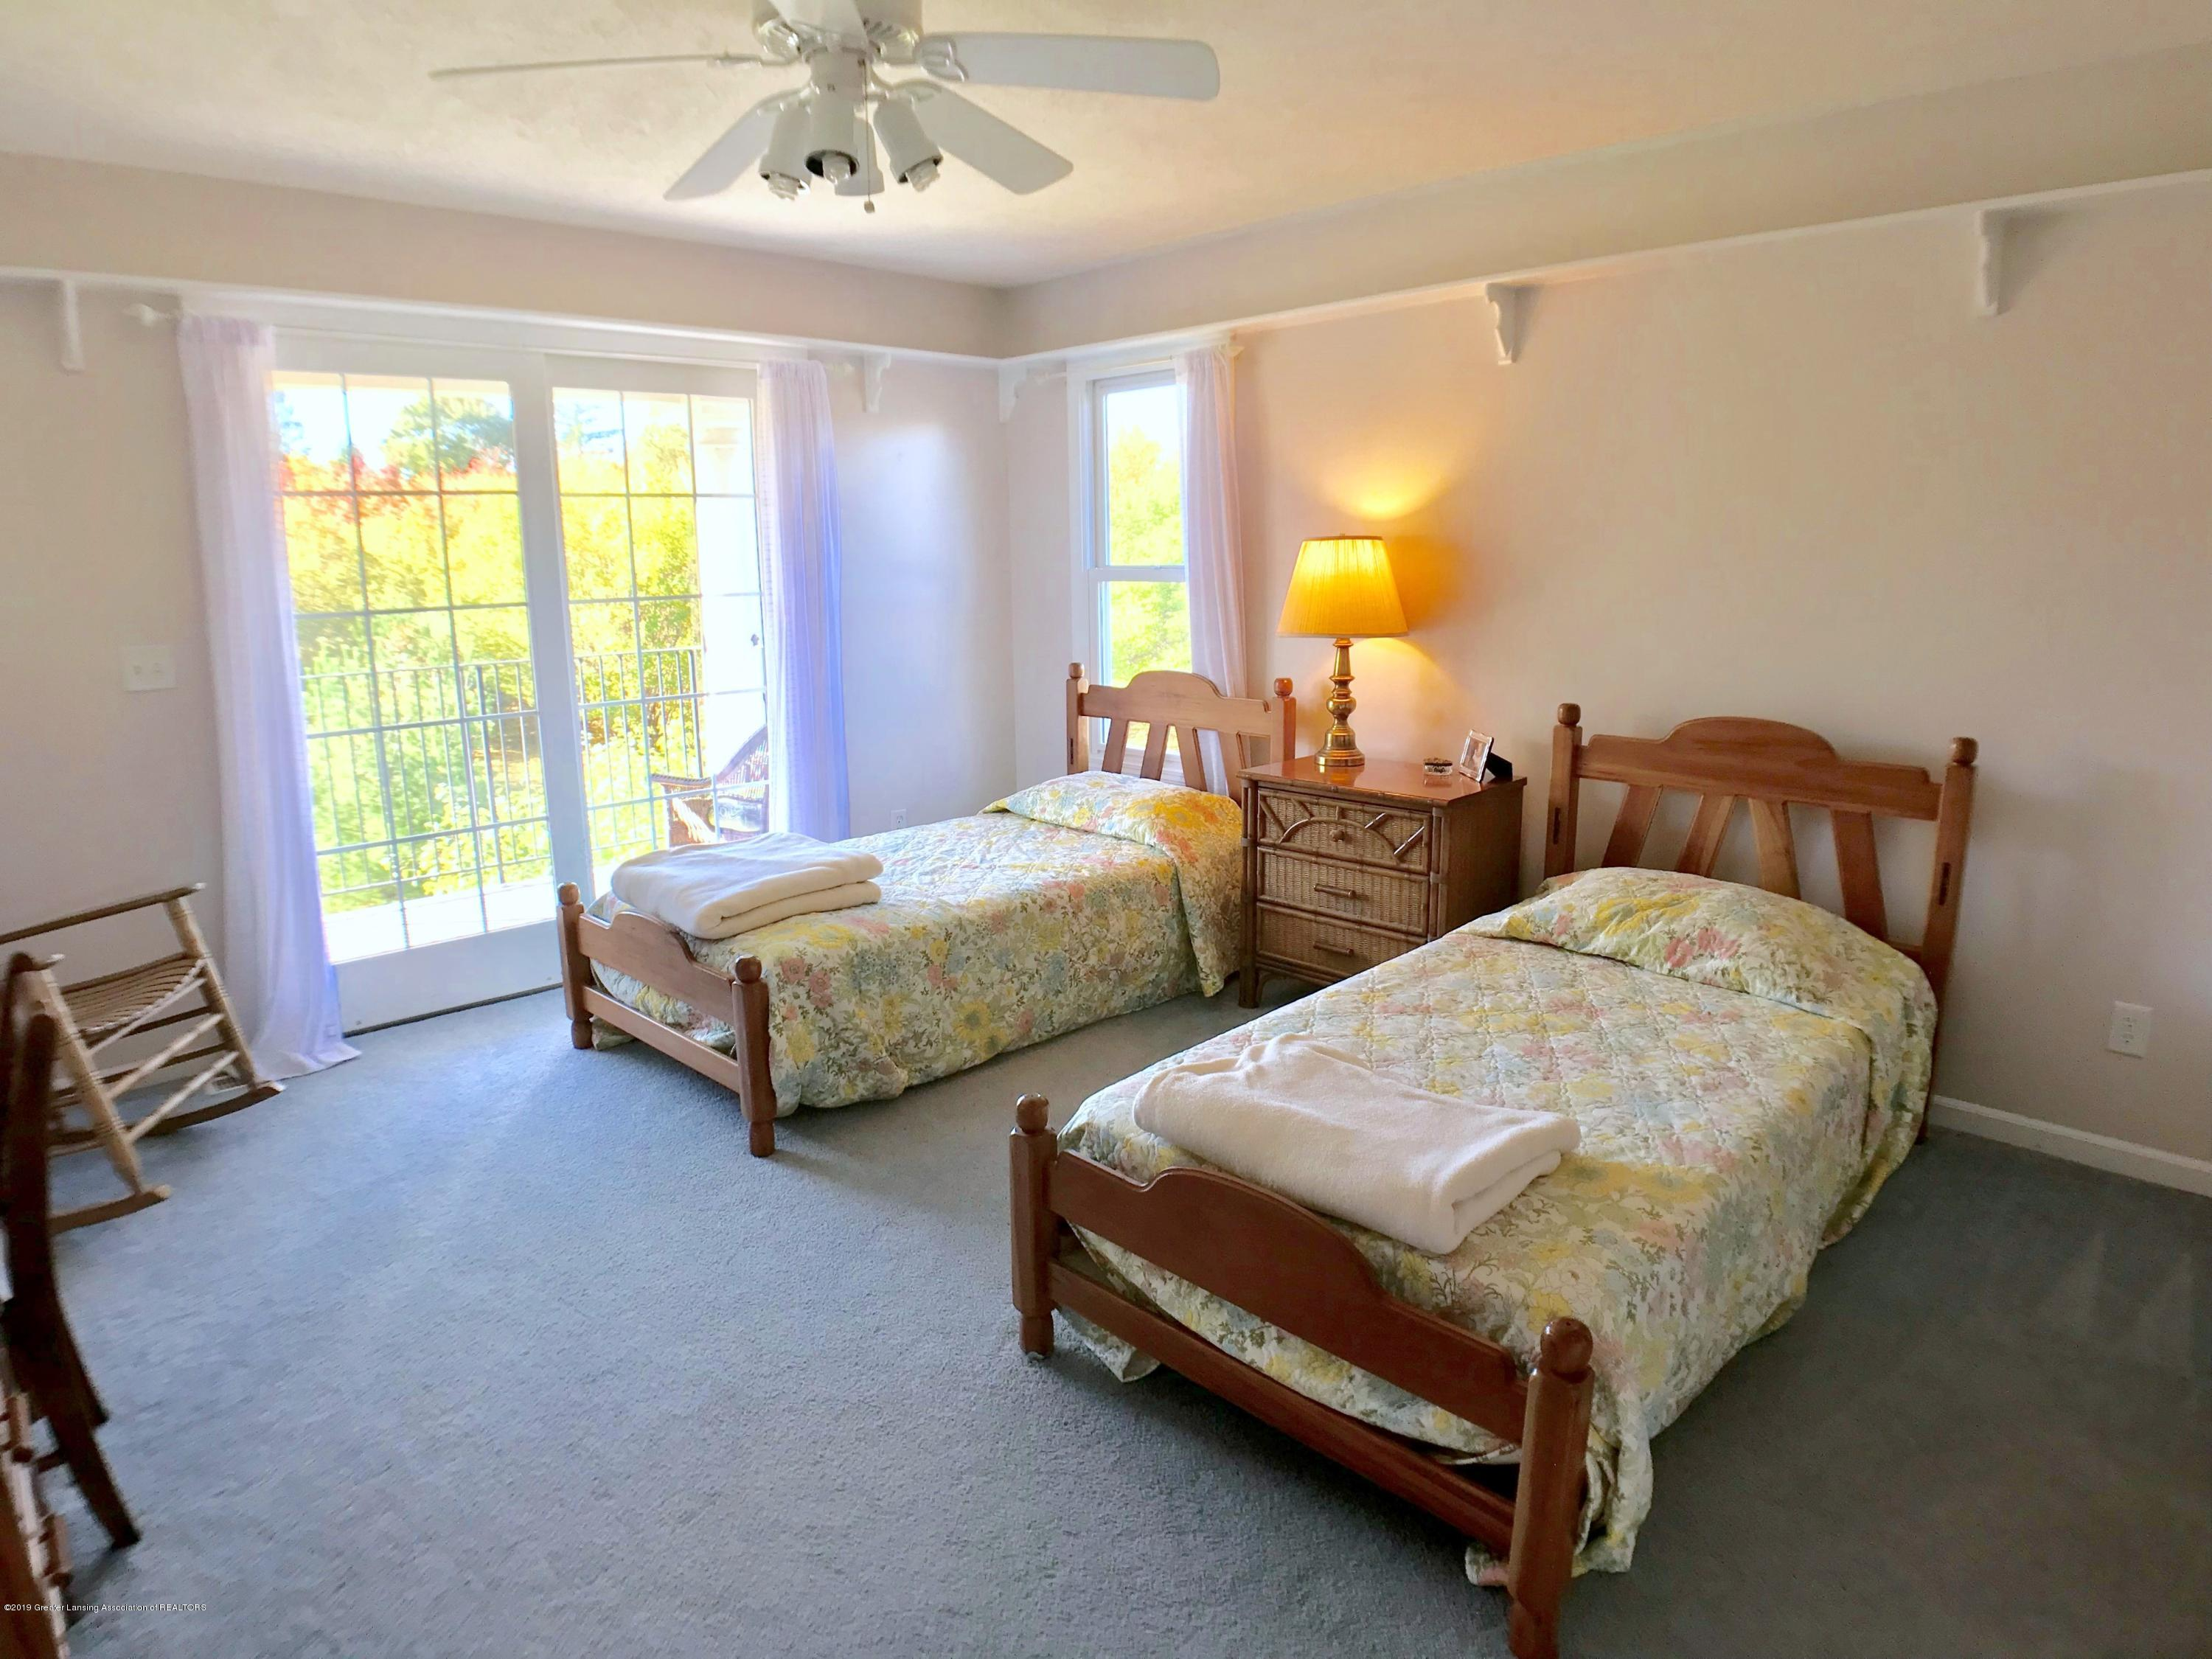 6430 Quail Ridge Ln - Bedroom - 38